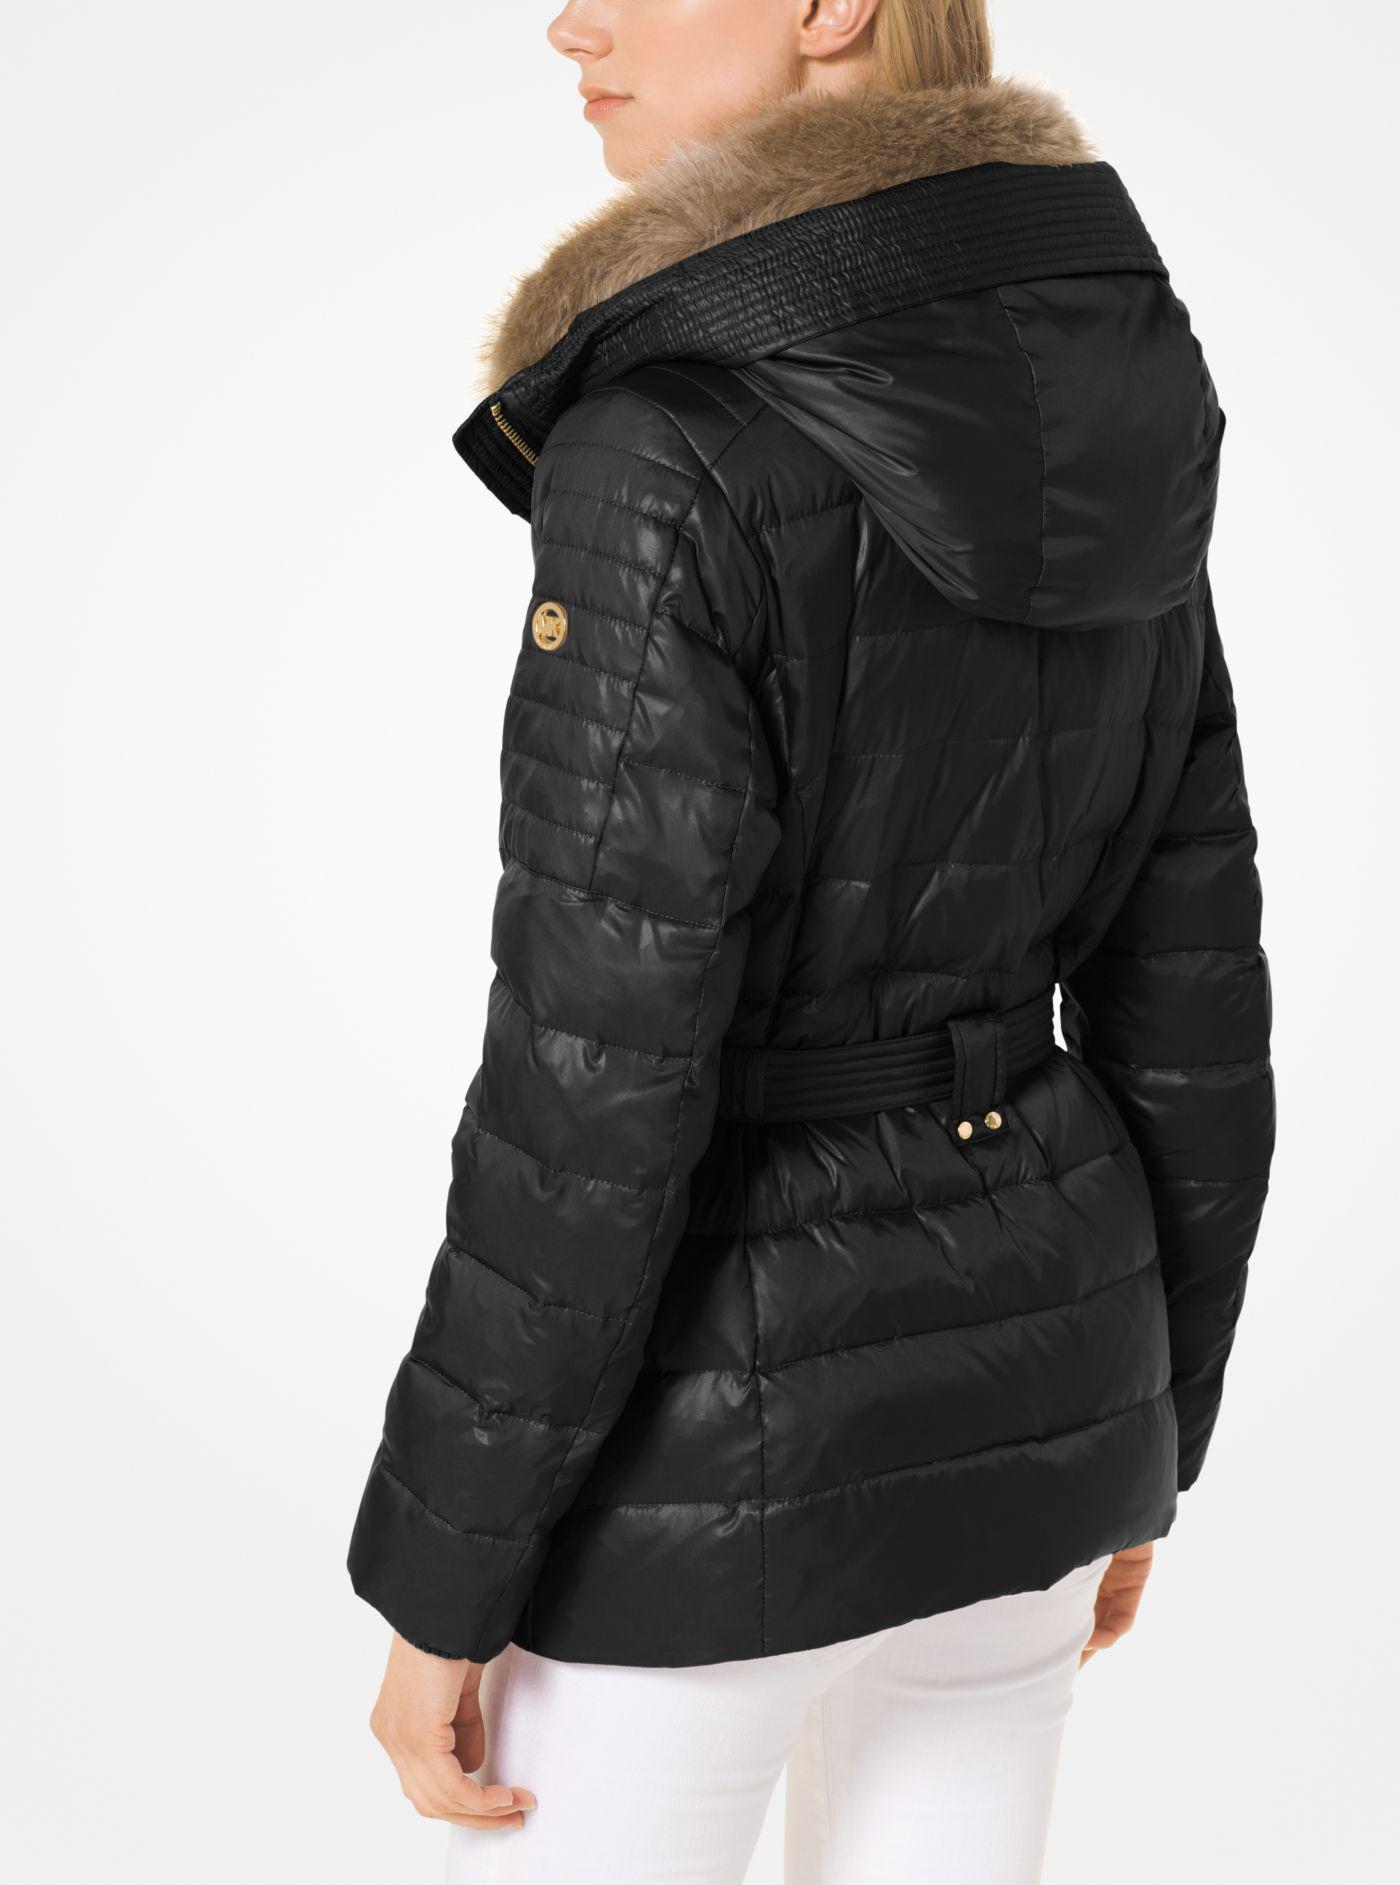 2734babca5de Lyst - Michael Kors Quilted Down And Faux Fur Puffer Jacket in Black